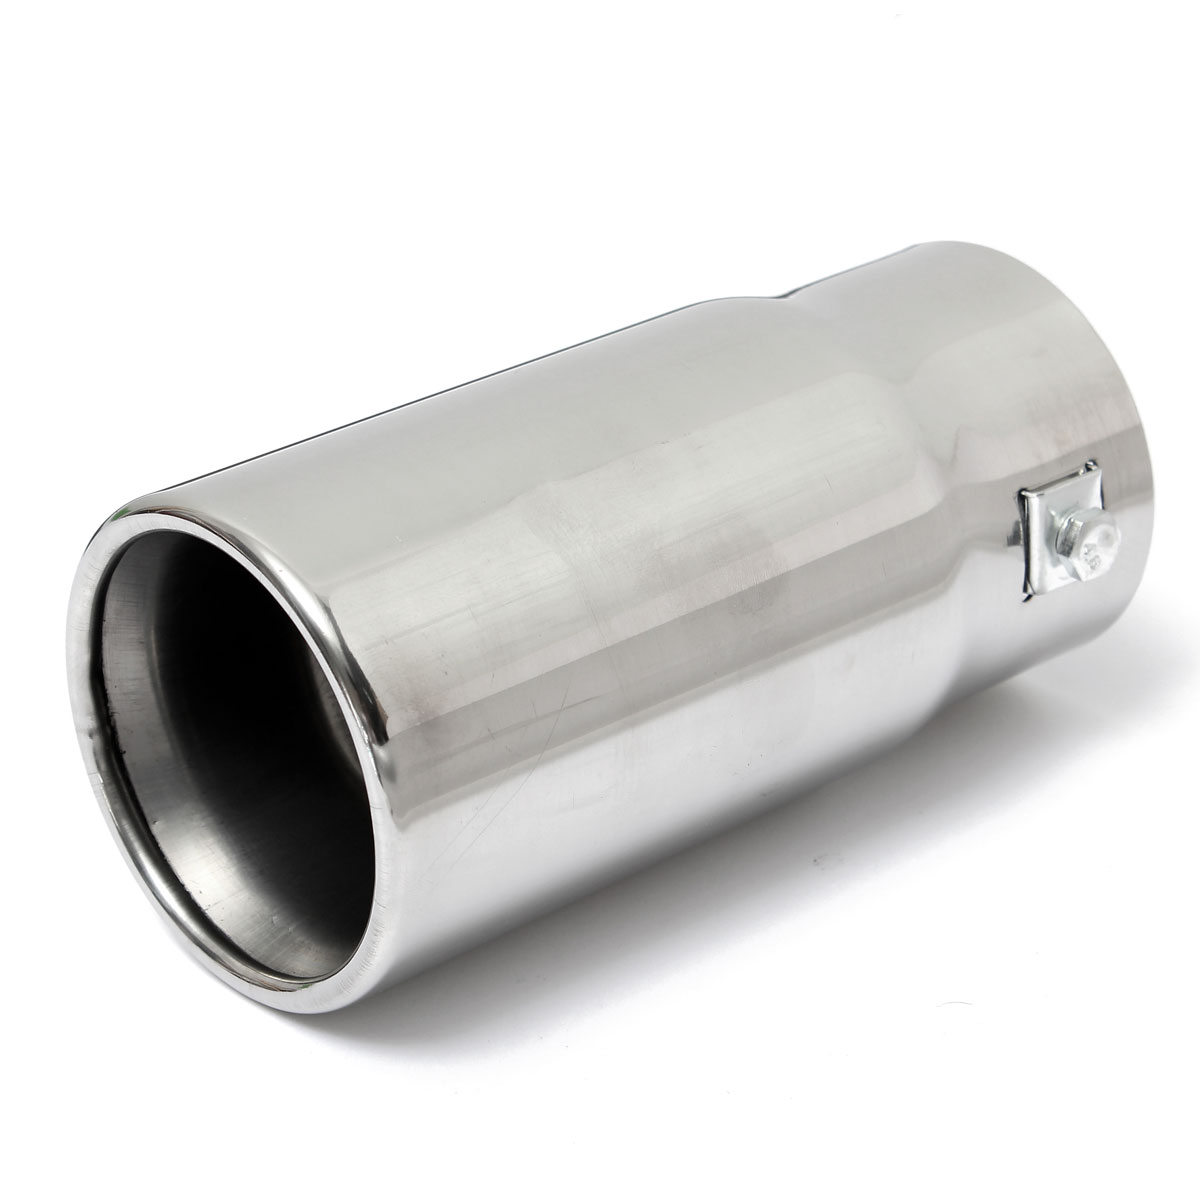 Auto Car Universal Stainless Steel Car Rear Round Exhaust Pipe Tail Muffler Tip